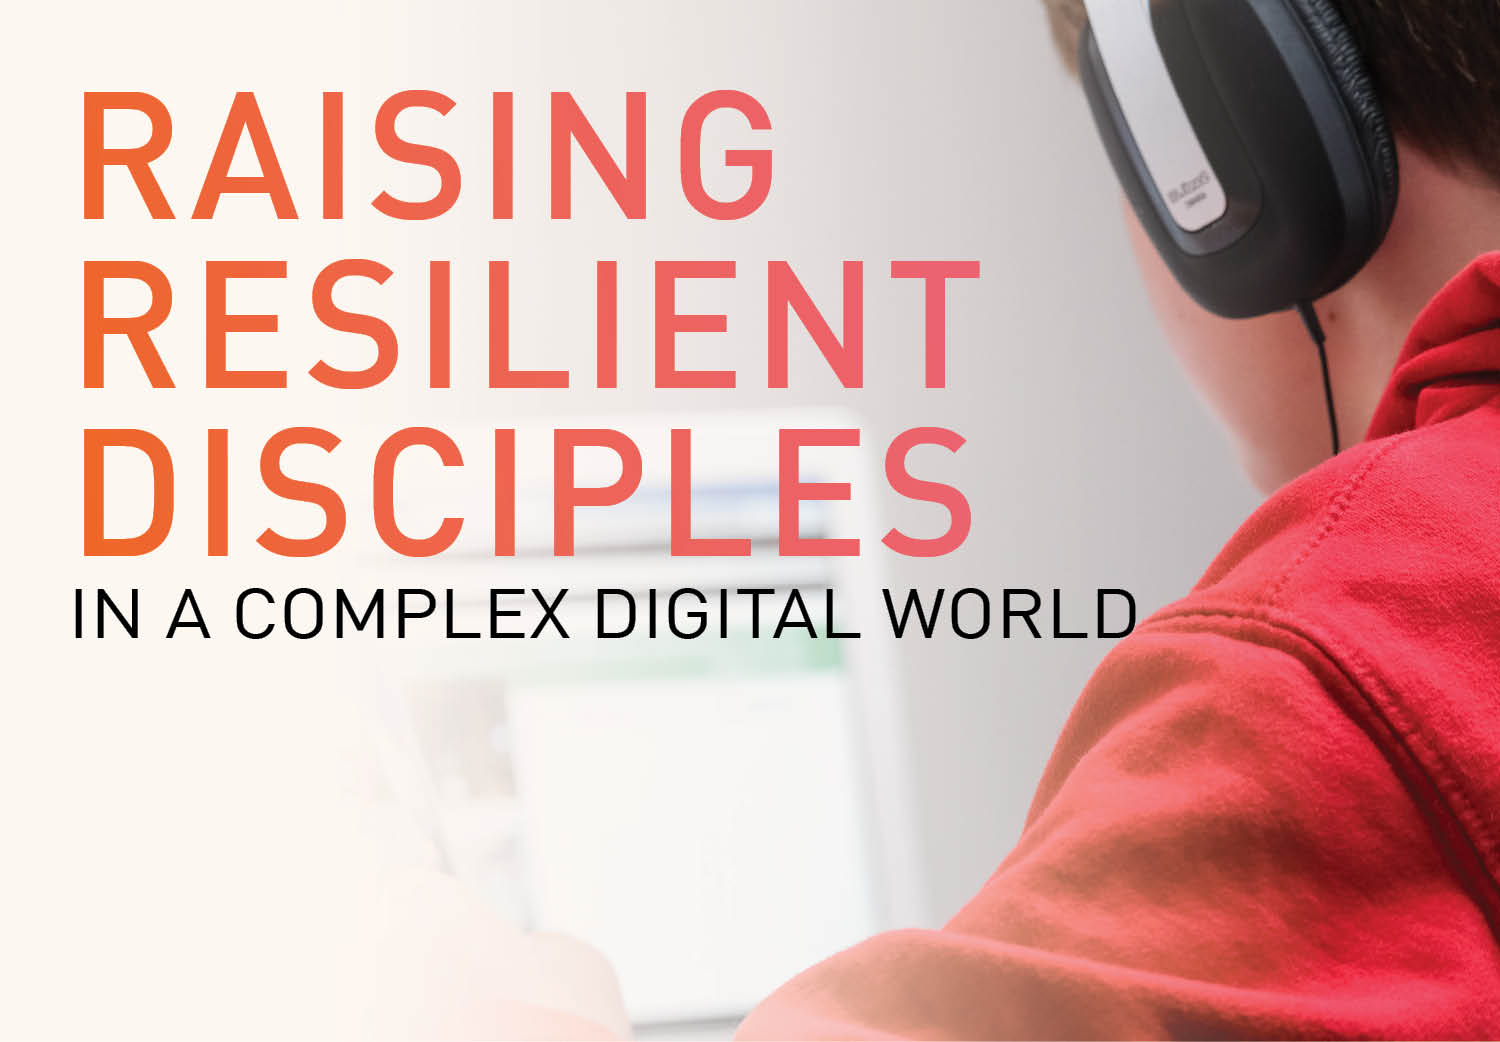 Raising Resilient Disciples in a Complex Digital World